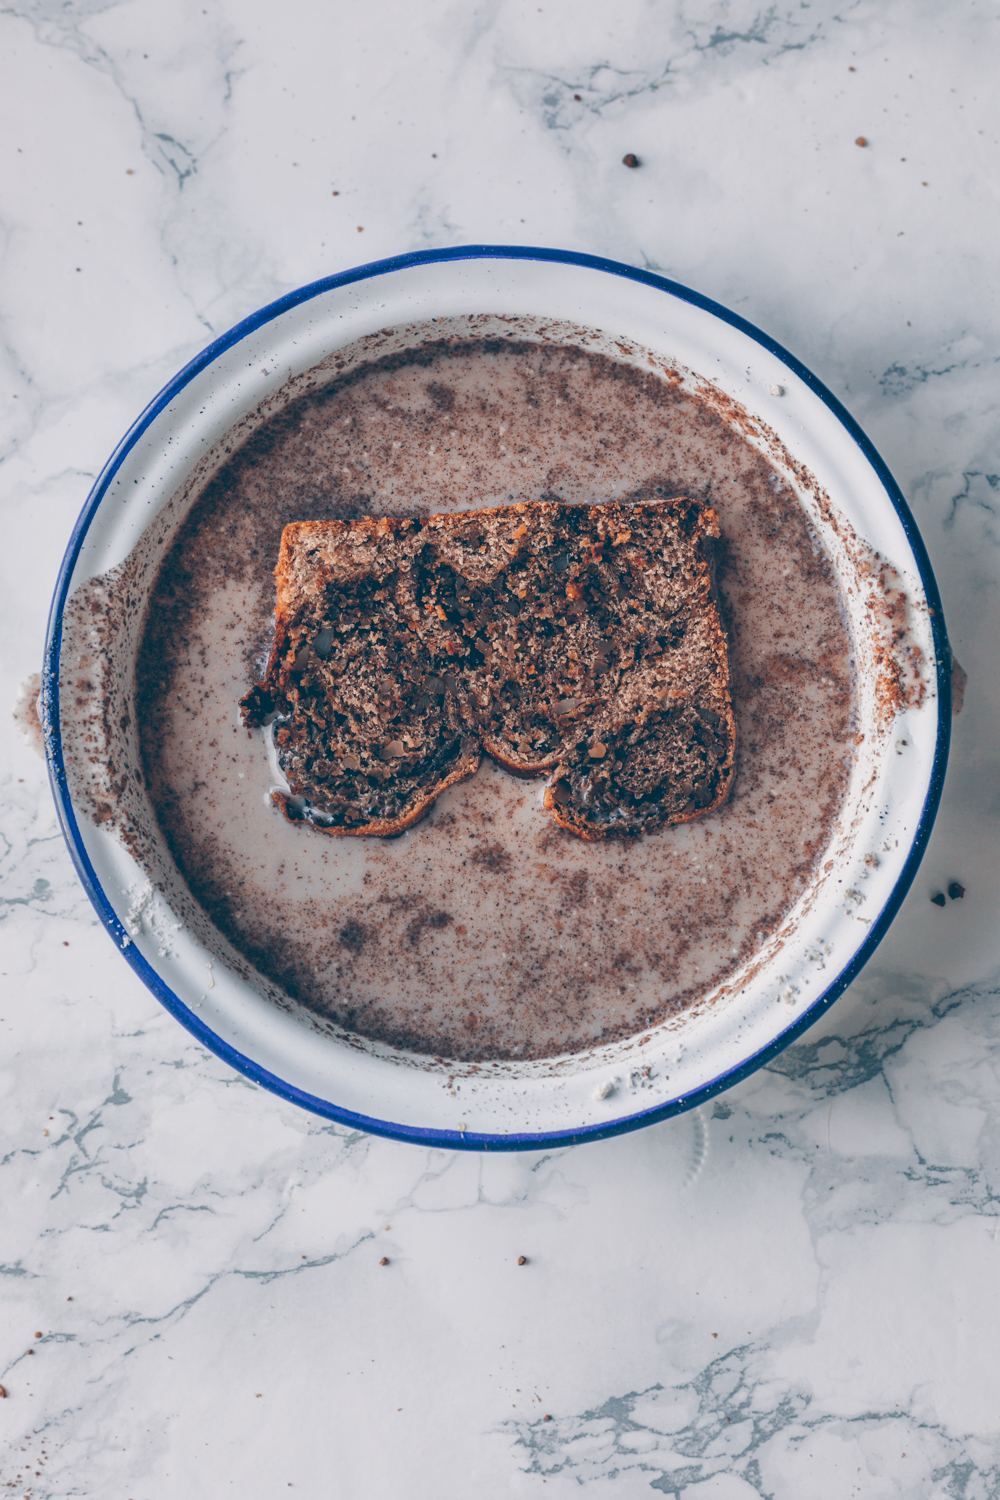 Vegan French Toast with Croatian Walnut Swirl Bread (Povitica) - An easy, quick and healthy-ish breakfast recipe. I made my Vegan French Toast with slices of my Croatian Walnut Swirl Bread but you can use any kind of yeast bread. This recipe for Vegan French Toast refrains from using nutritional yeast and instead comes with a secret ingredient - Kala Namak salt (Indian black salt) which gives the Vegan French Toast a savory, umami and eggy taste. - A Vegan recipe by Kati of black.white.vivid. - food photography, moody photography, matte photography, moody food photography, vegan dessert, vegan breakfast, food styling